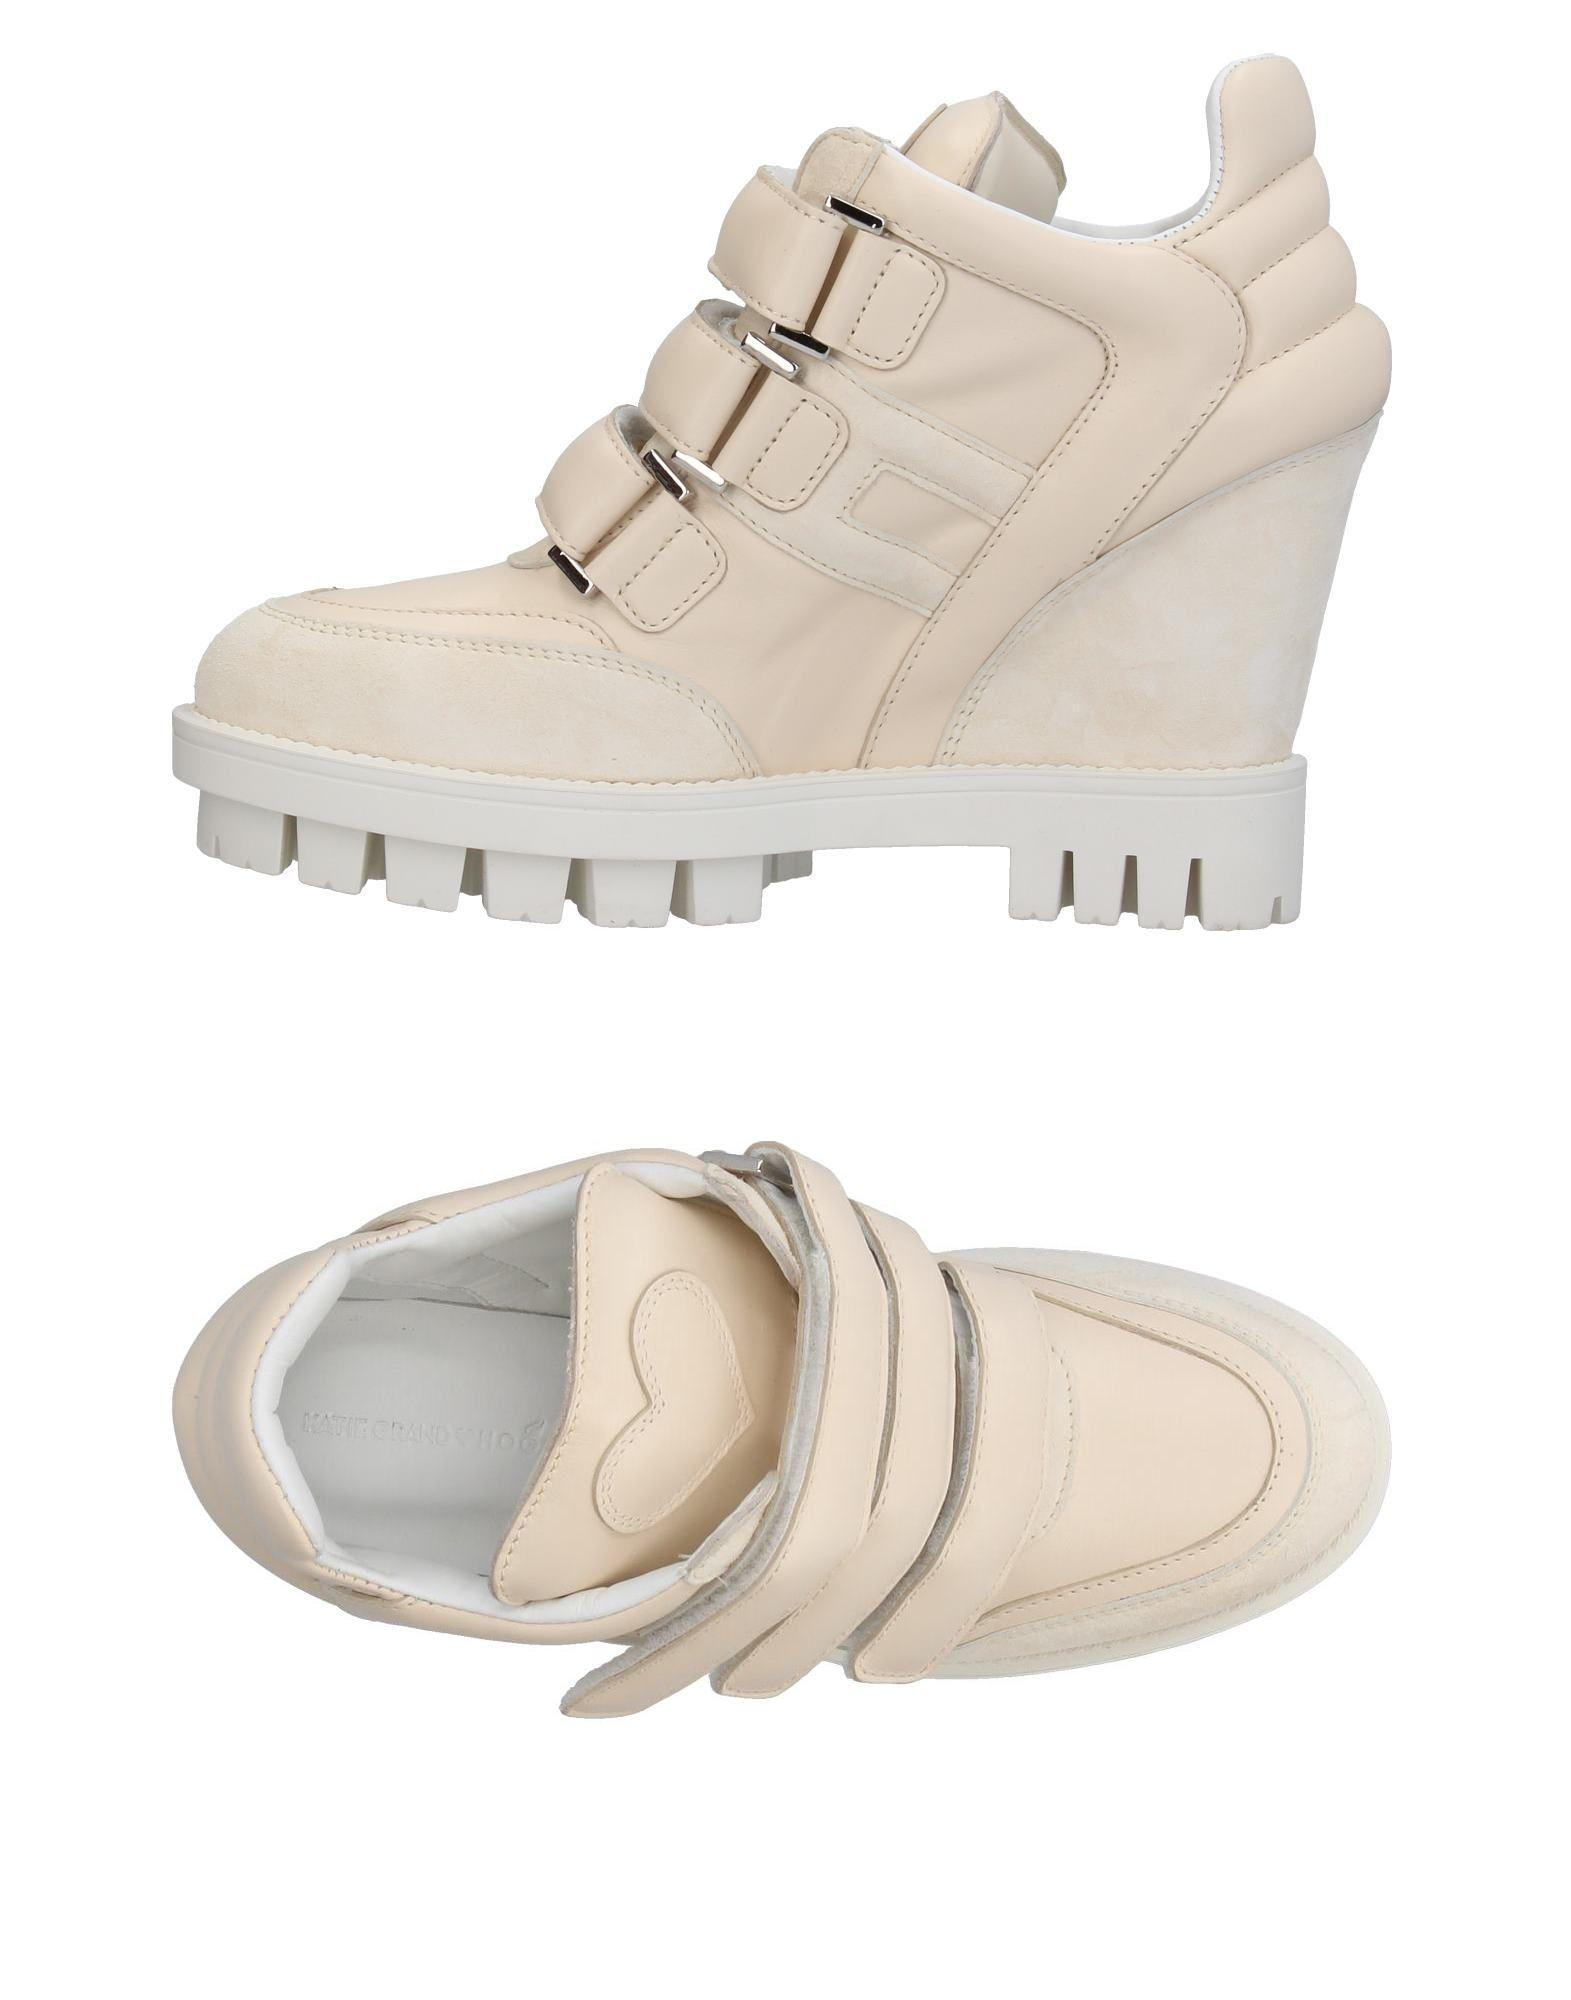 1892063a341f Lyst - Katie Grand Loves Hogan Low-tops   Sneakers in White